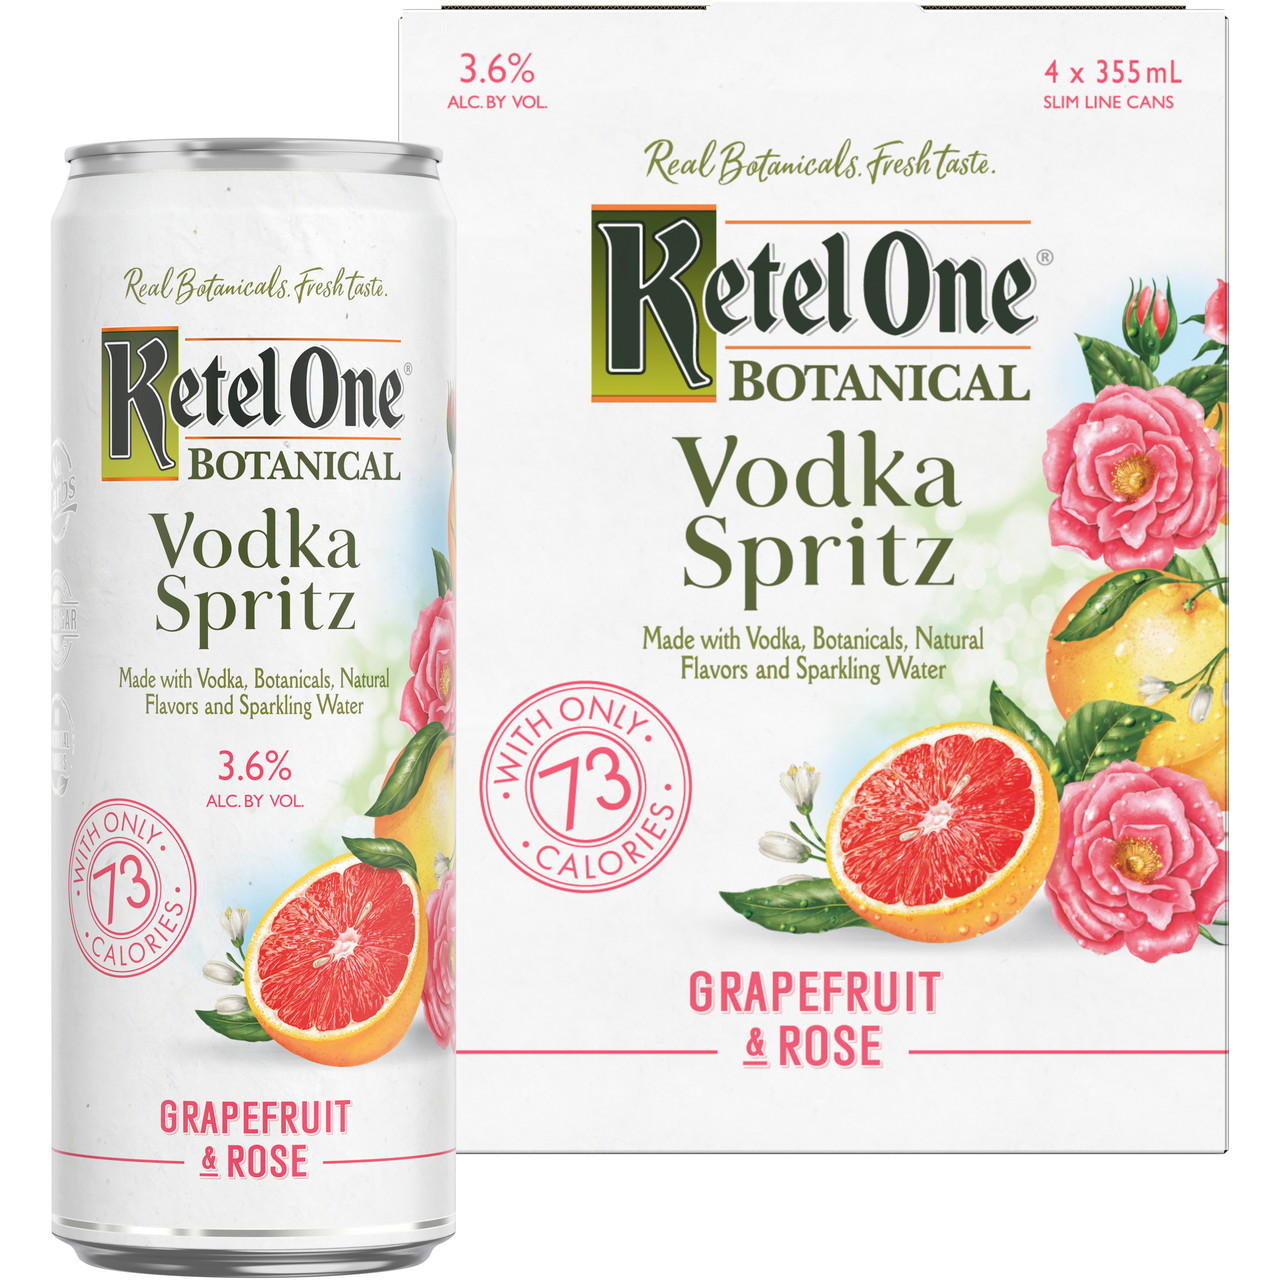 Artfully infused with real botanicals, natural fruit essence and sparkling water, Ketel One Botanical Vodka Spritz Grapefruit & Rose offers an enticing new way to enjoy vodka. Made with exceptionally smooth, Non-GMO Ketel One Vodka and stored in a slim ready-to-enjoy can, this drink features the zesty taste of freshly squeezed grapefruit with a touch of rose. Ketel One Botanical Vodka Spritz Grapefruit & Rose is gluten-free and contains no artificial sweeteners, added sugars or artificial colors. Includes one 7.2 proof 12 fl oz can of Ketel One Botanical Vodka Spritz Grapefruit & Rose.